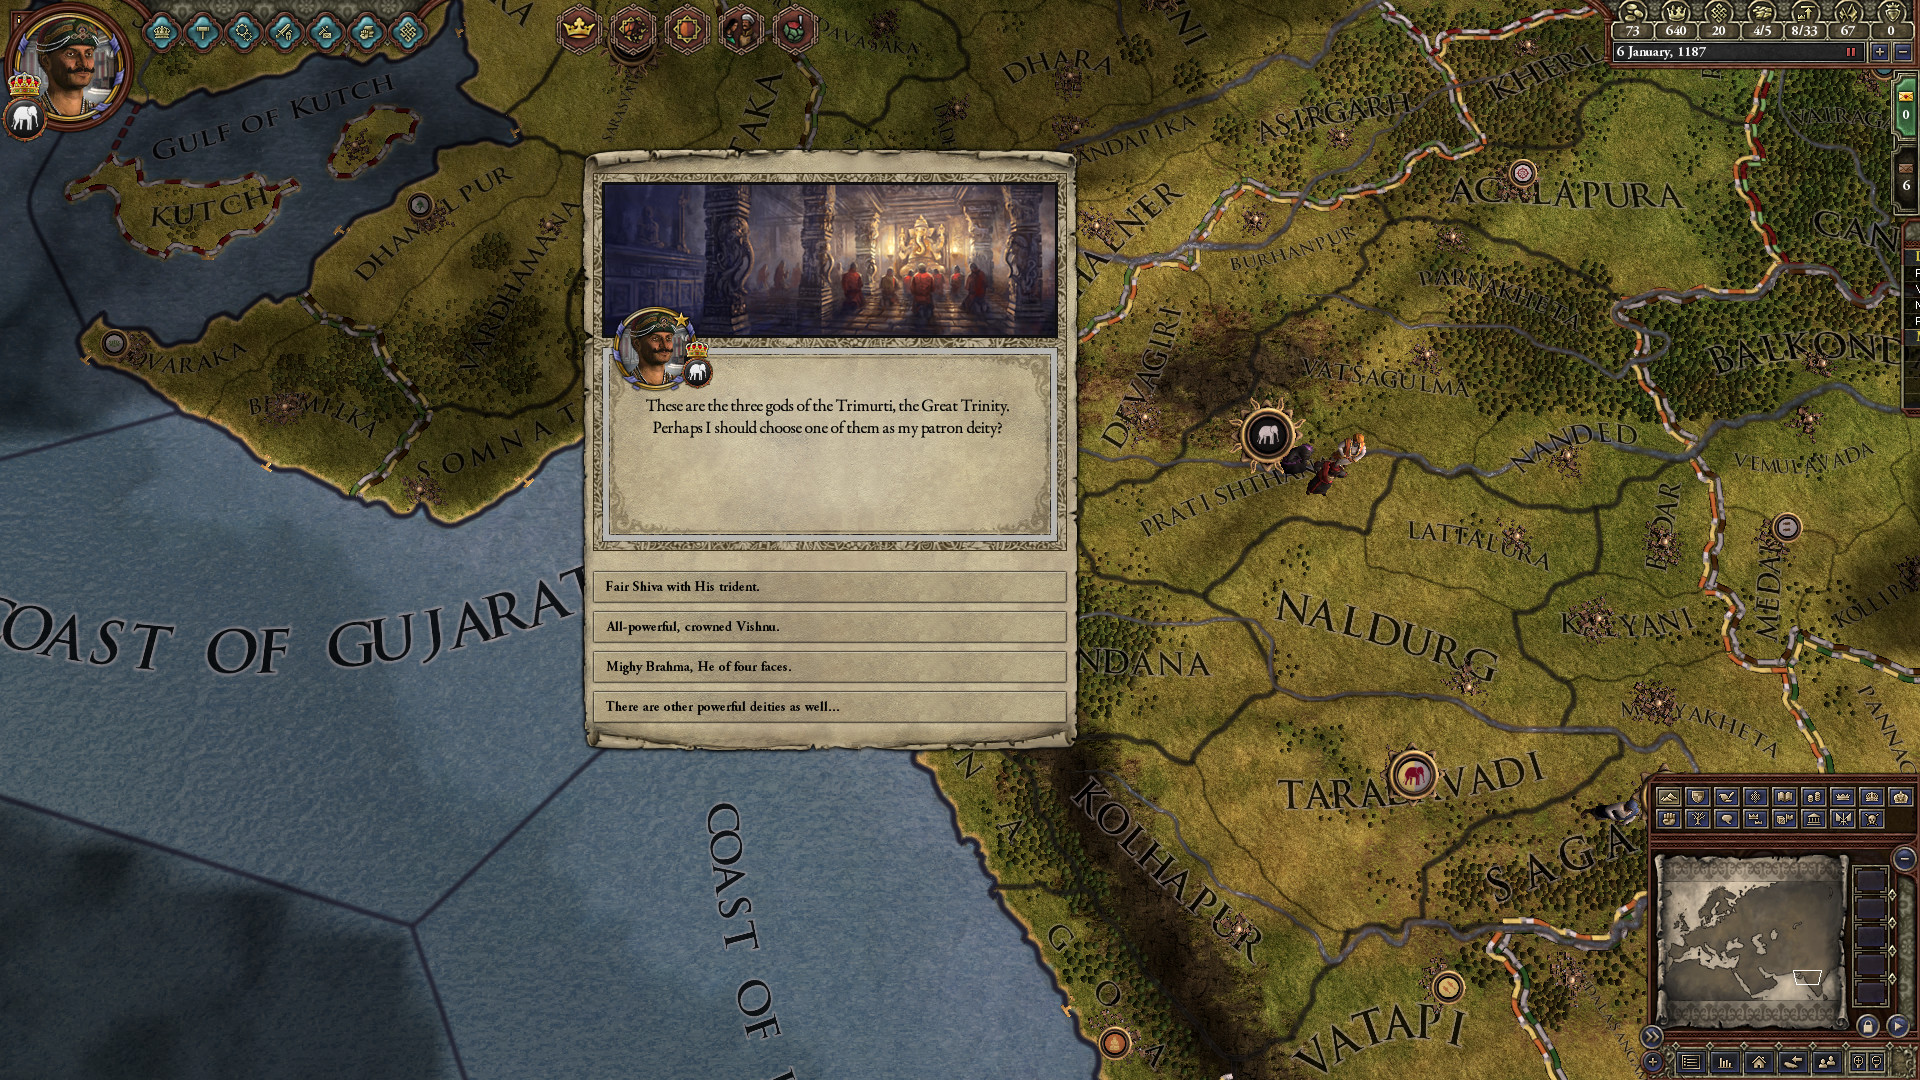 Expansion - Crusader Kings II: Rajas of India screenshot